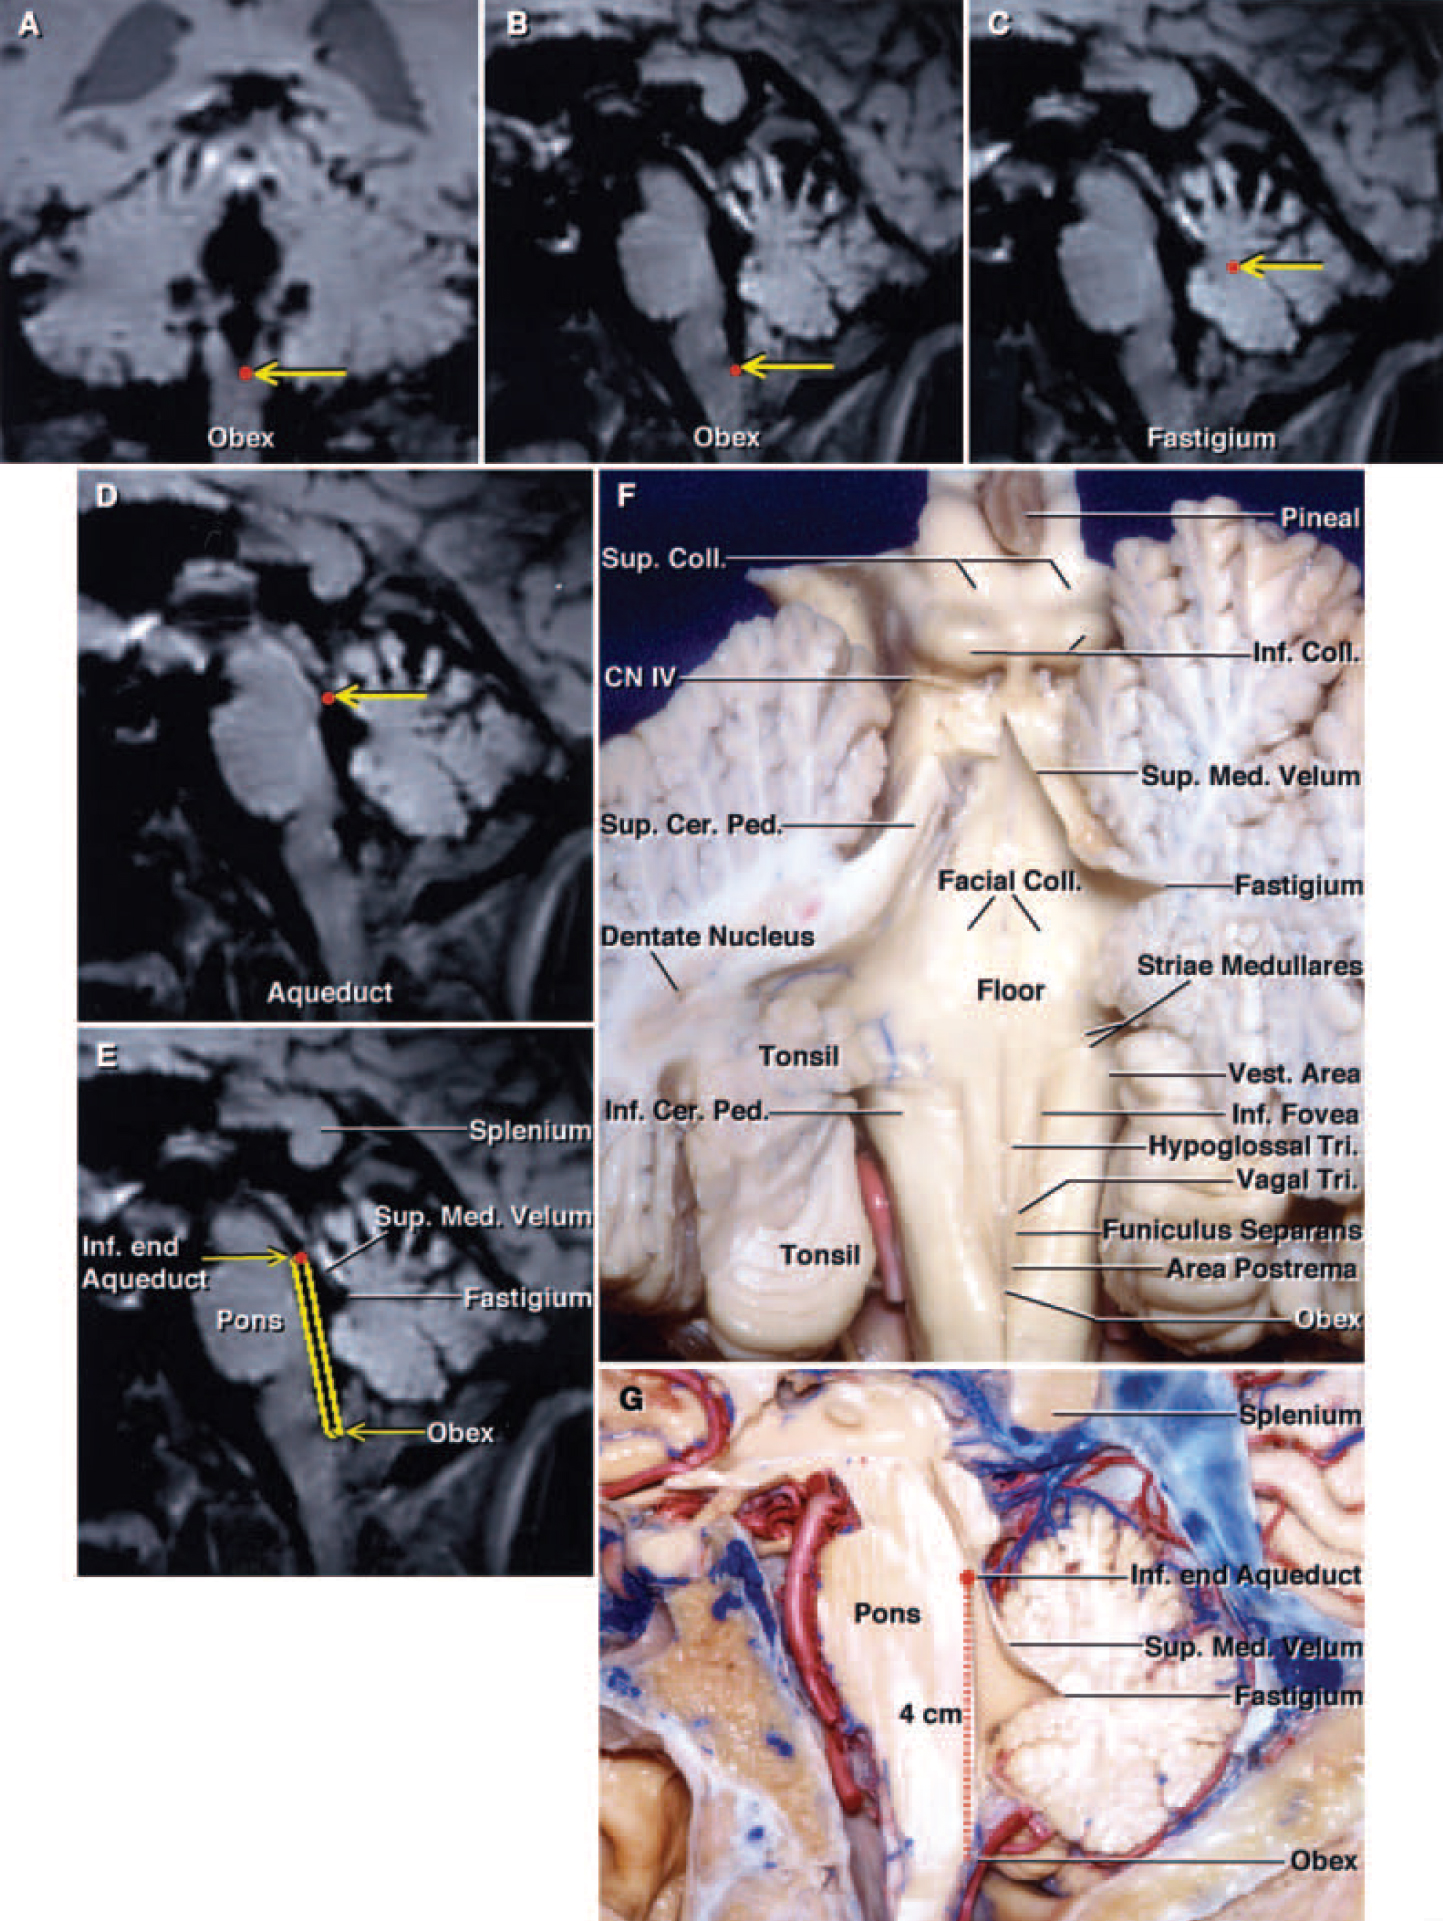 FIG. 3. A–E: Stealth MR images demonstrating the anatomical landmarks (red dotsindicated byyellow arrows) along the floor and roof of the fourth ventricle. Coronal (A) and sagittal MR images (B) demonstrating the location of the obex. Sagittal MR images (C and D) revealing the fastigium and aqueduct. Sagittal MR image (E) depicting the floor of the fourth ventricle and its relation to the superior medullary velum and fastigium. (This brain section is located at approximately the same level as the sagittal section of a cadaver shown in panel G.) F: The cerebellum has been cut at the midline and the left half has been sectioned further in an oblique coronal plane to show the relationship of the rostral pole of the tonsil to the dentate nucleus. The dentate nucleus appears to wrap around the tonsil. The fibers of the superior cerebellar peduncle arise in the dentate nucleus and ascend in the medial side of the superior cerebellar peduncle. The striae medullaris cross the midportion of the floor. The vestibular area, the portion of the floor that is lateral to the median eminence and the sulcus limitans, is located at the lateral limit of the floor of the fourth ventricle. The inferior fovea is a depression in the sulcus limitans located lateral to the hypoglossal triangle. The median eminence contains the facial colliculi in its upper part and the hypoglossal and vagal triangles and the area postrema in its lower portion. The median eminence is crossed by the funiculus seperans. The trochlear nerves arise below the inferior colliculus. G: Sagittal section of a hemisphere. The full length of the floor of the fourth ventricle from the inferior edge of the aqueduct to the obex is approximately 4 cm. The roof of the fourth ventricle is a tent-shaped structure. The apex of the roof, the fastigium, is the site of the roof's greatest height and width. The superior half of the roof expands posteriorly from the aqueduct to the level of the fastigium. This sagittal section corre